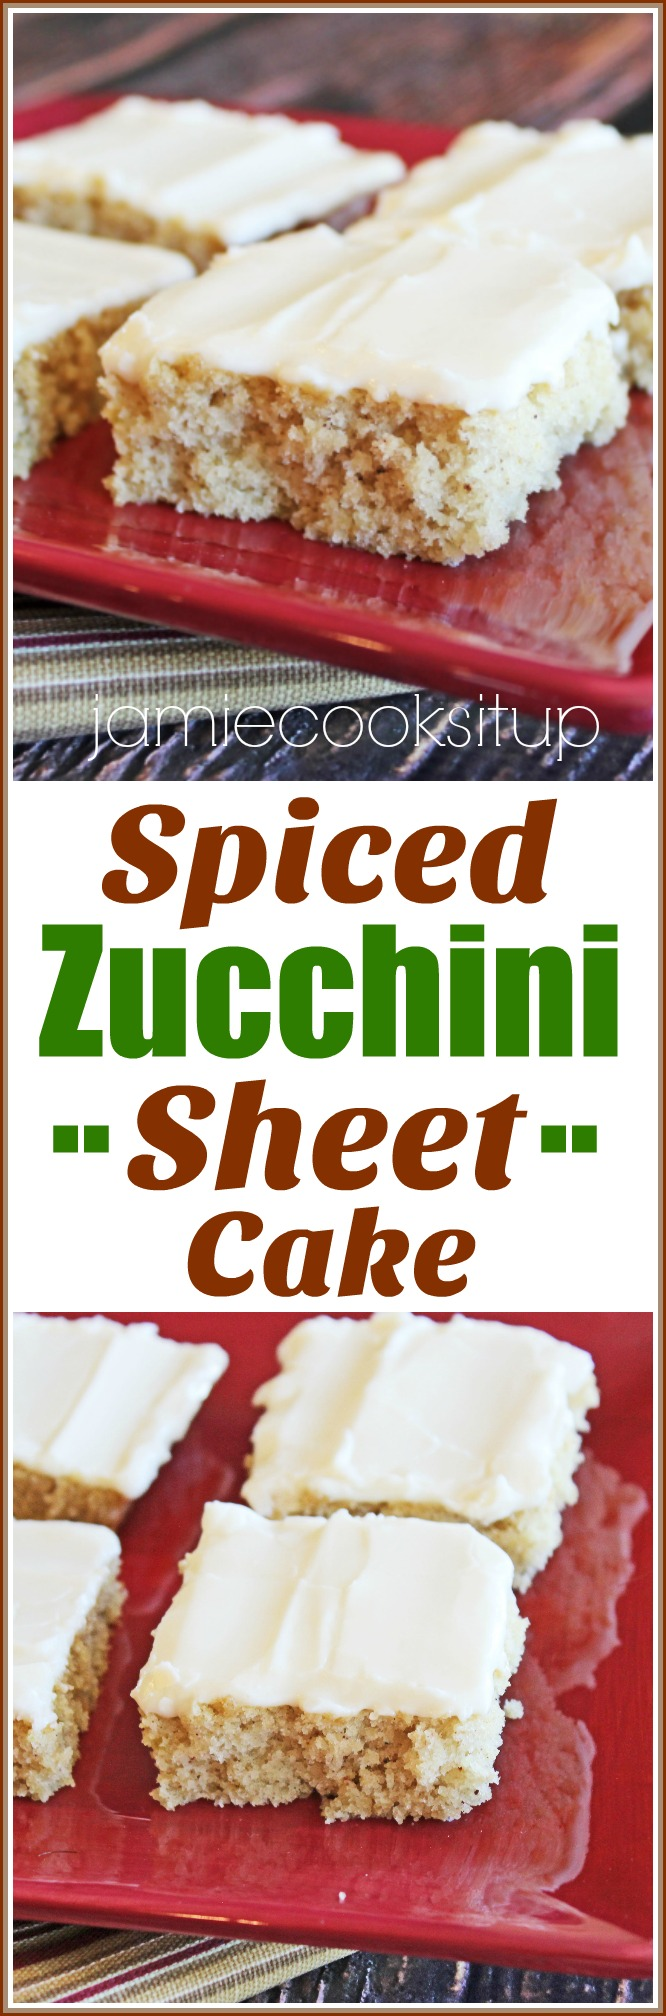 Spiced Zucchini Sheet Cake from Jamie Cooks It Up!